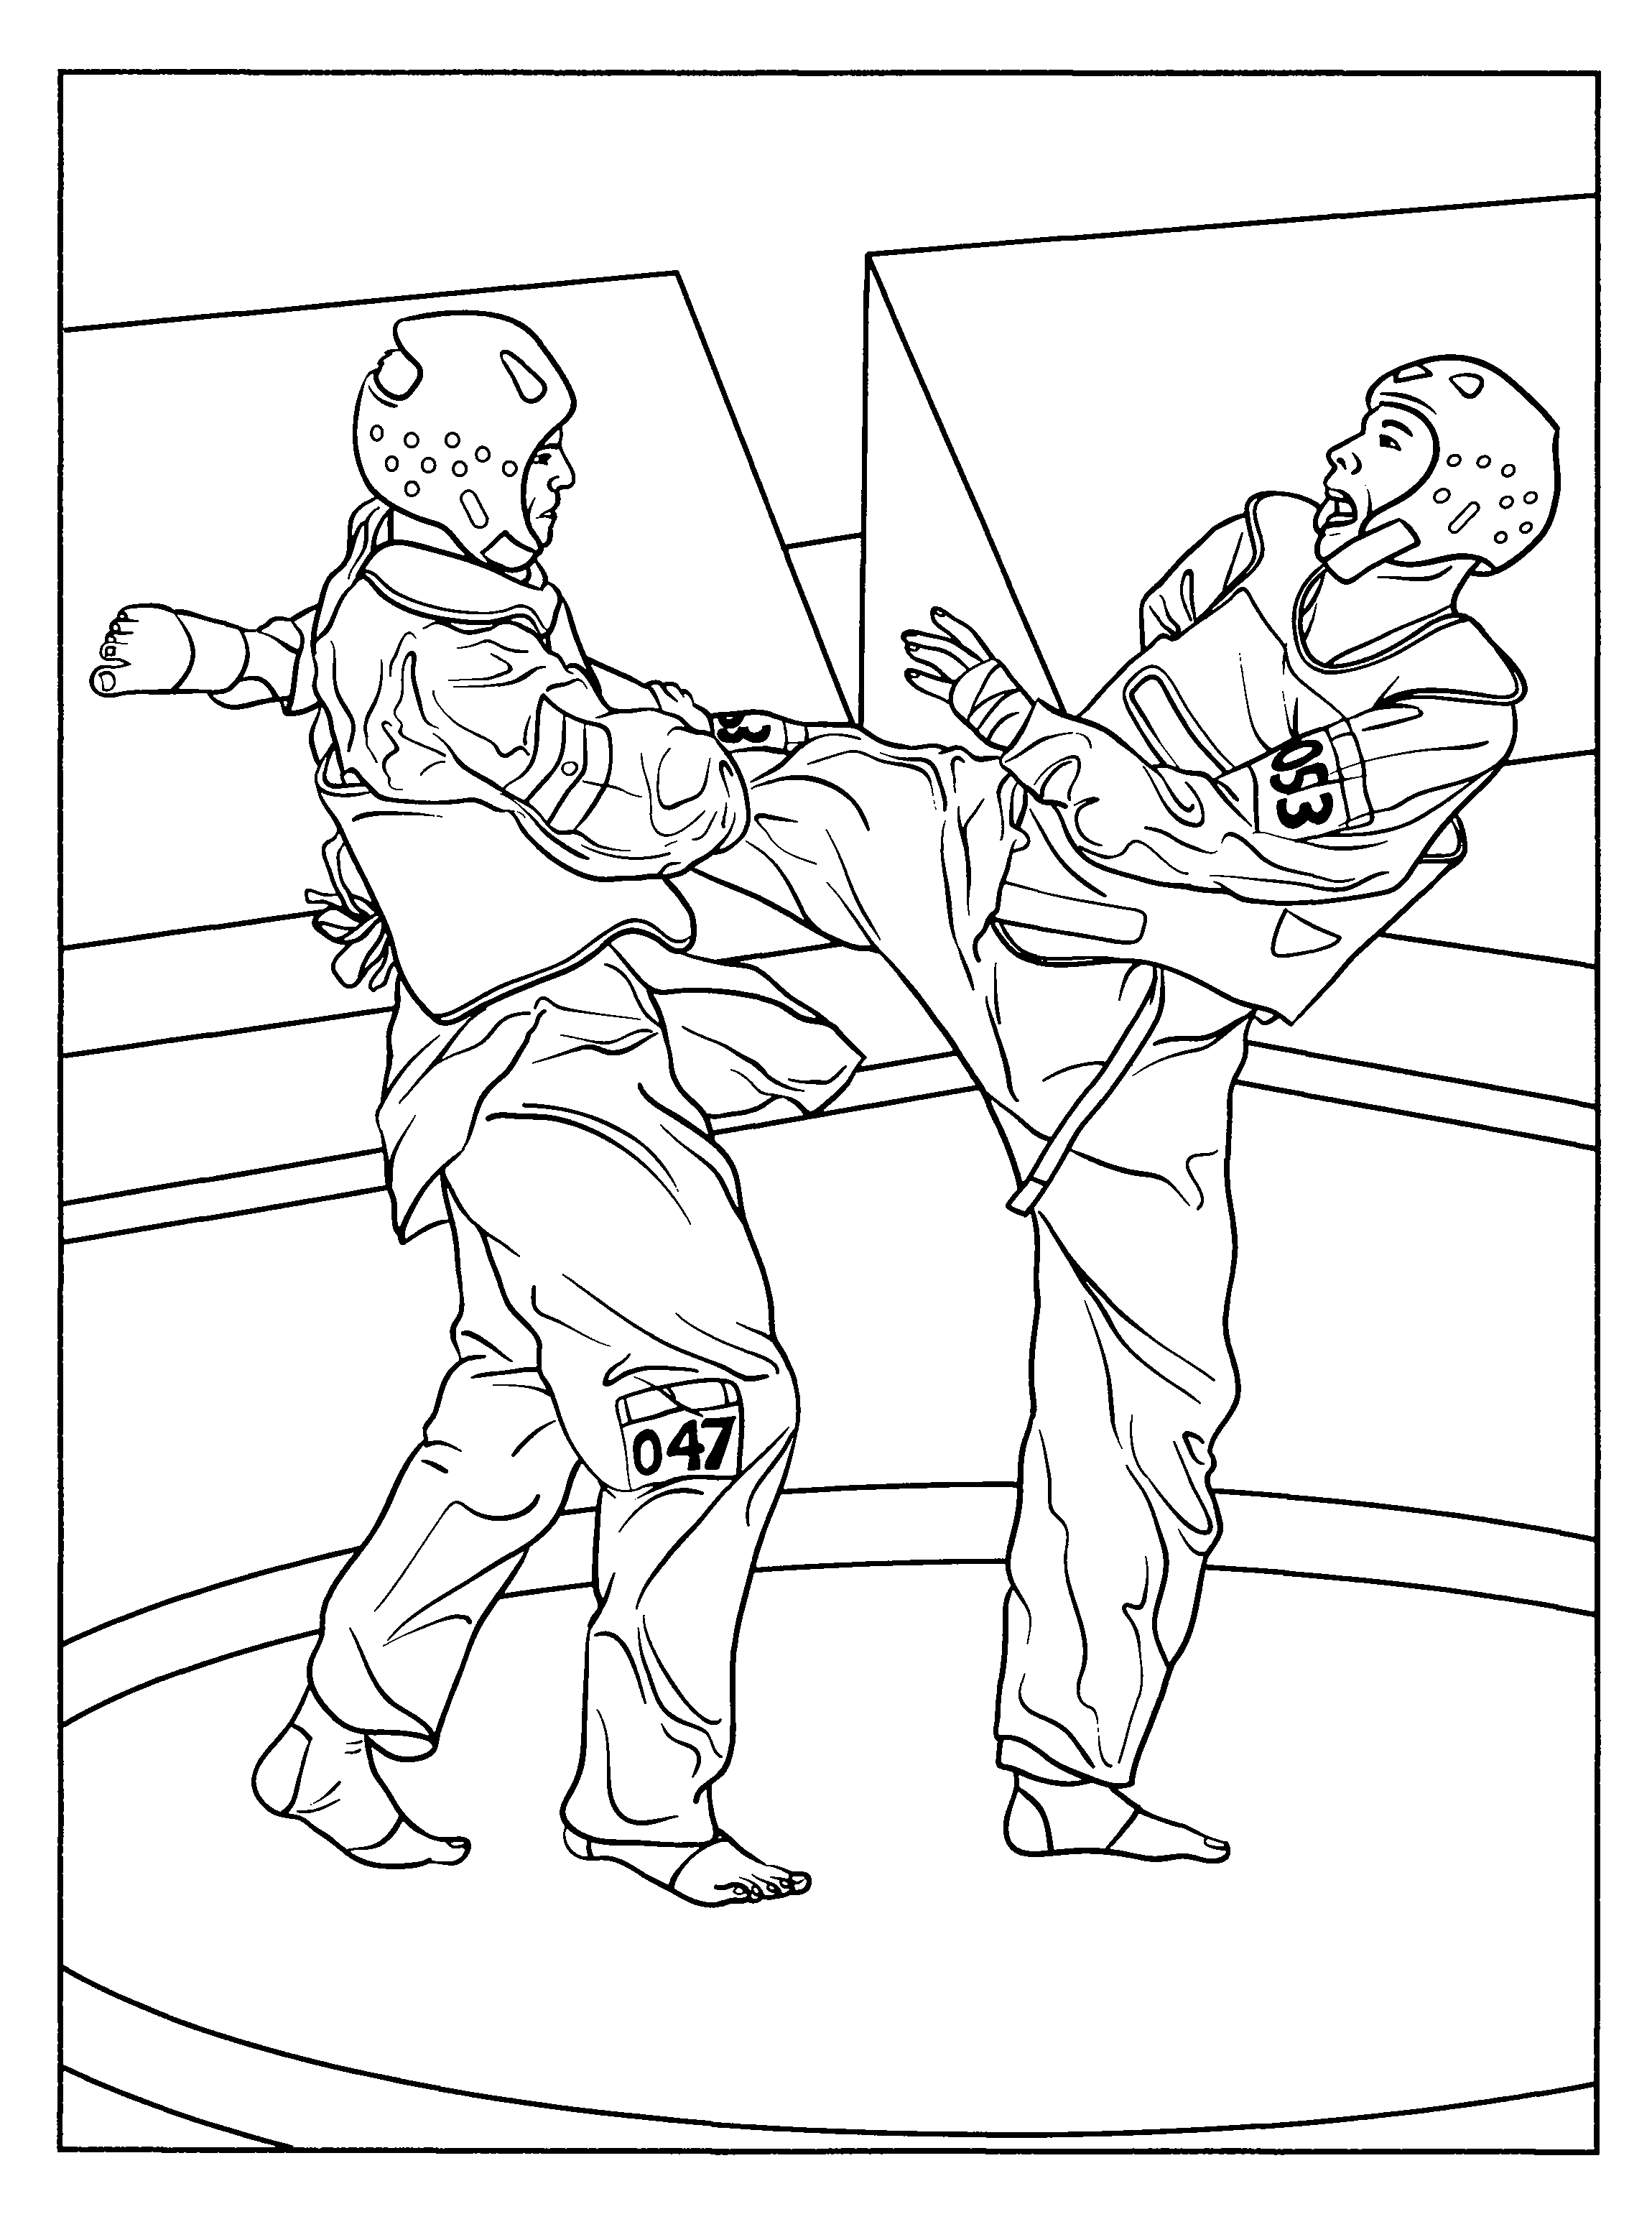 Karate Coloring Pages For Kids | Coloring Pages | Karate School - Free Printable Karate Coloring Pages